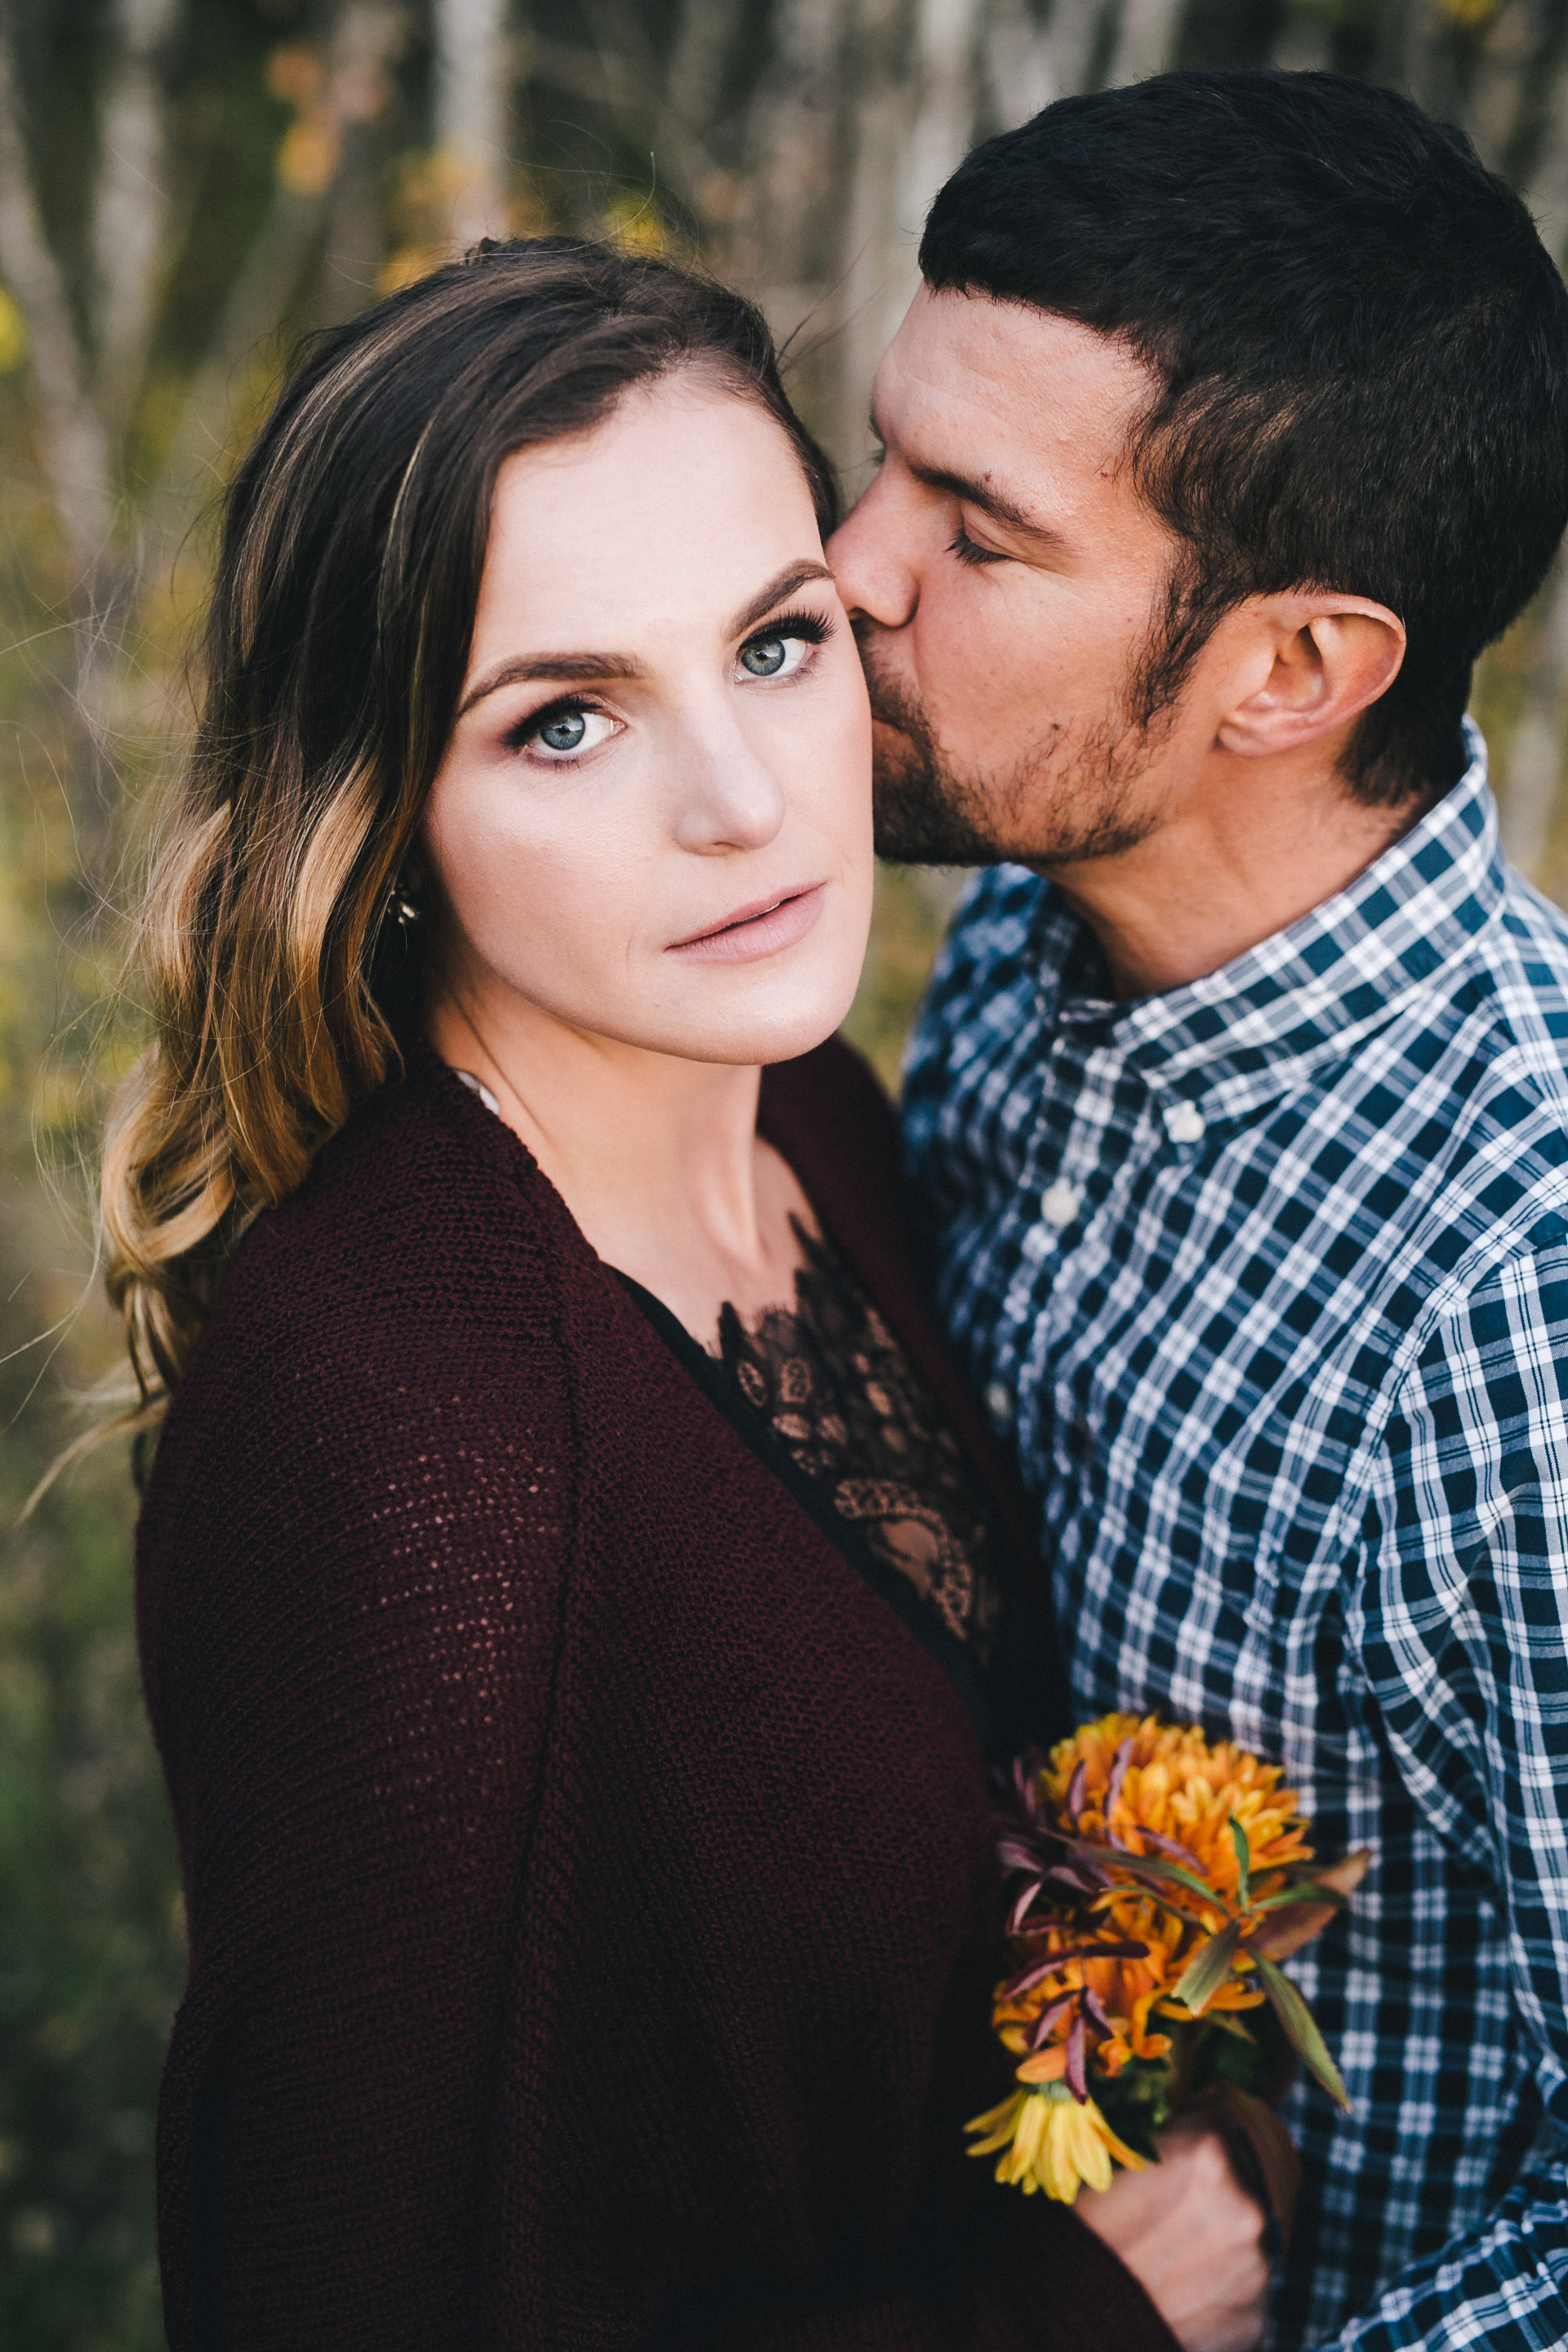 CourtneyDarrenEngagement-27.jpg